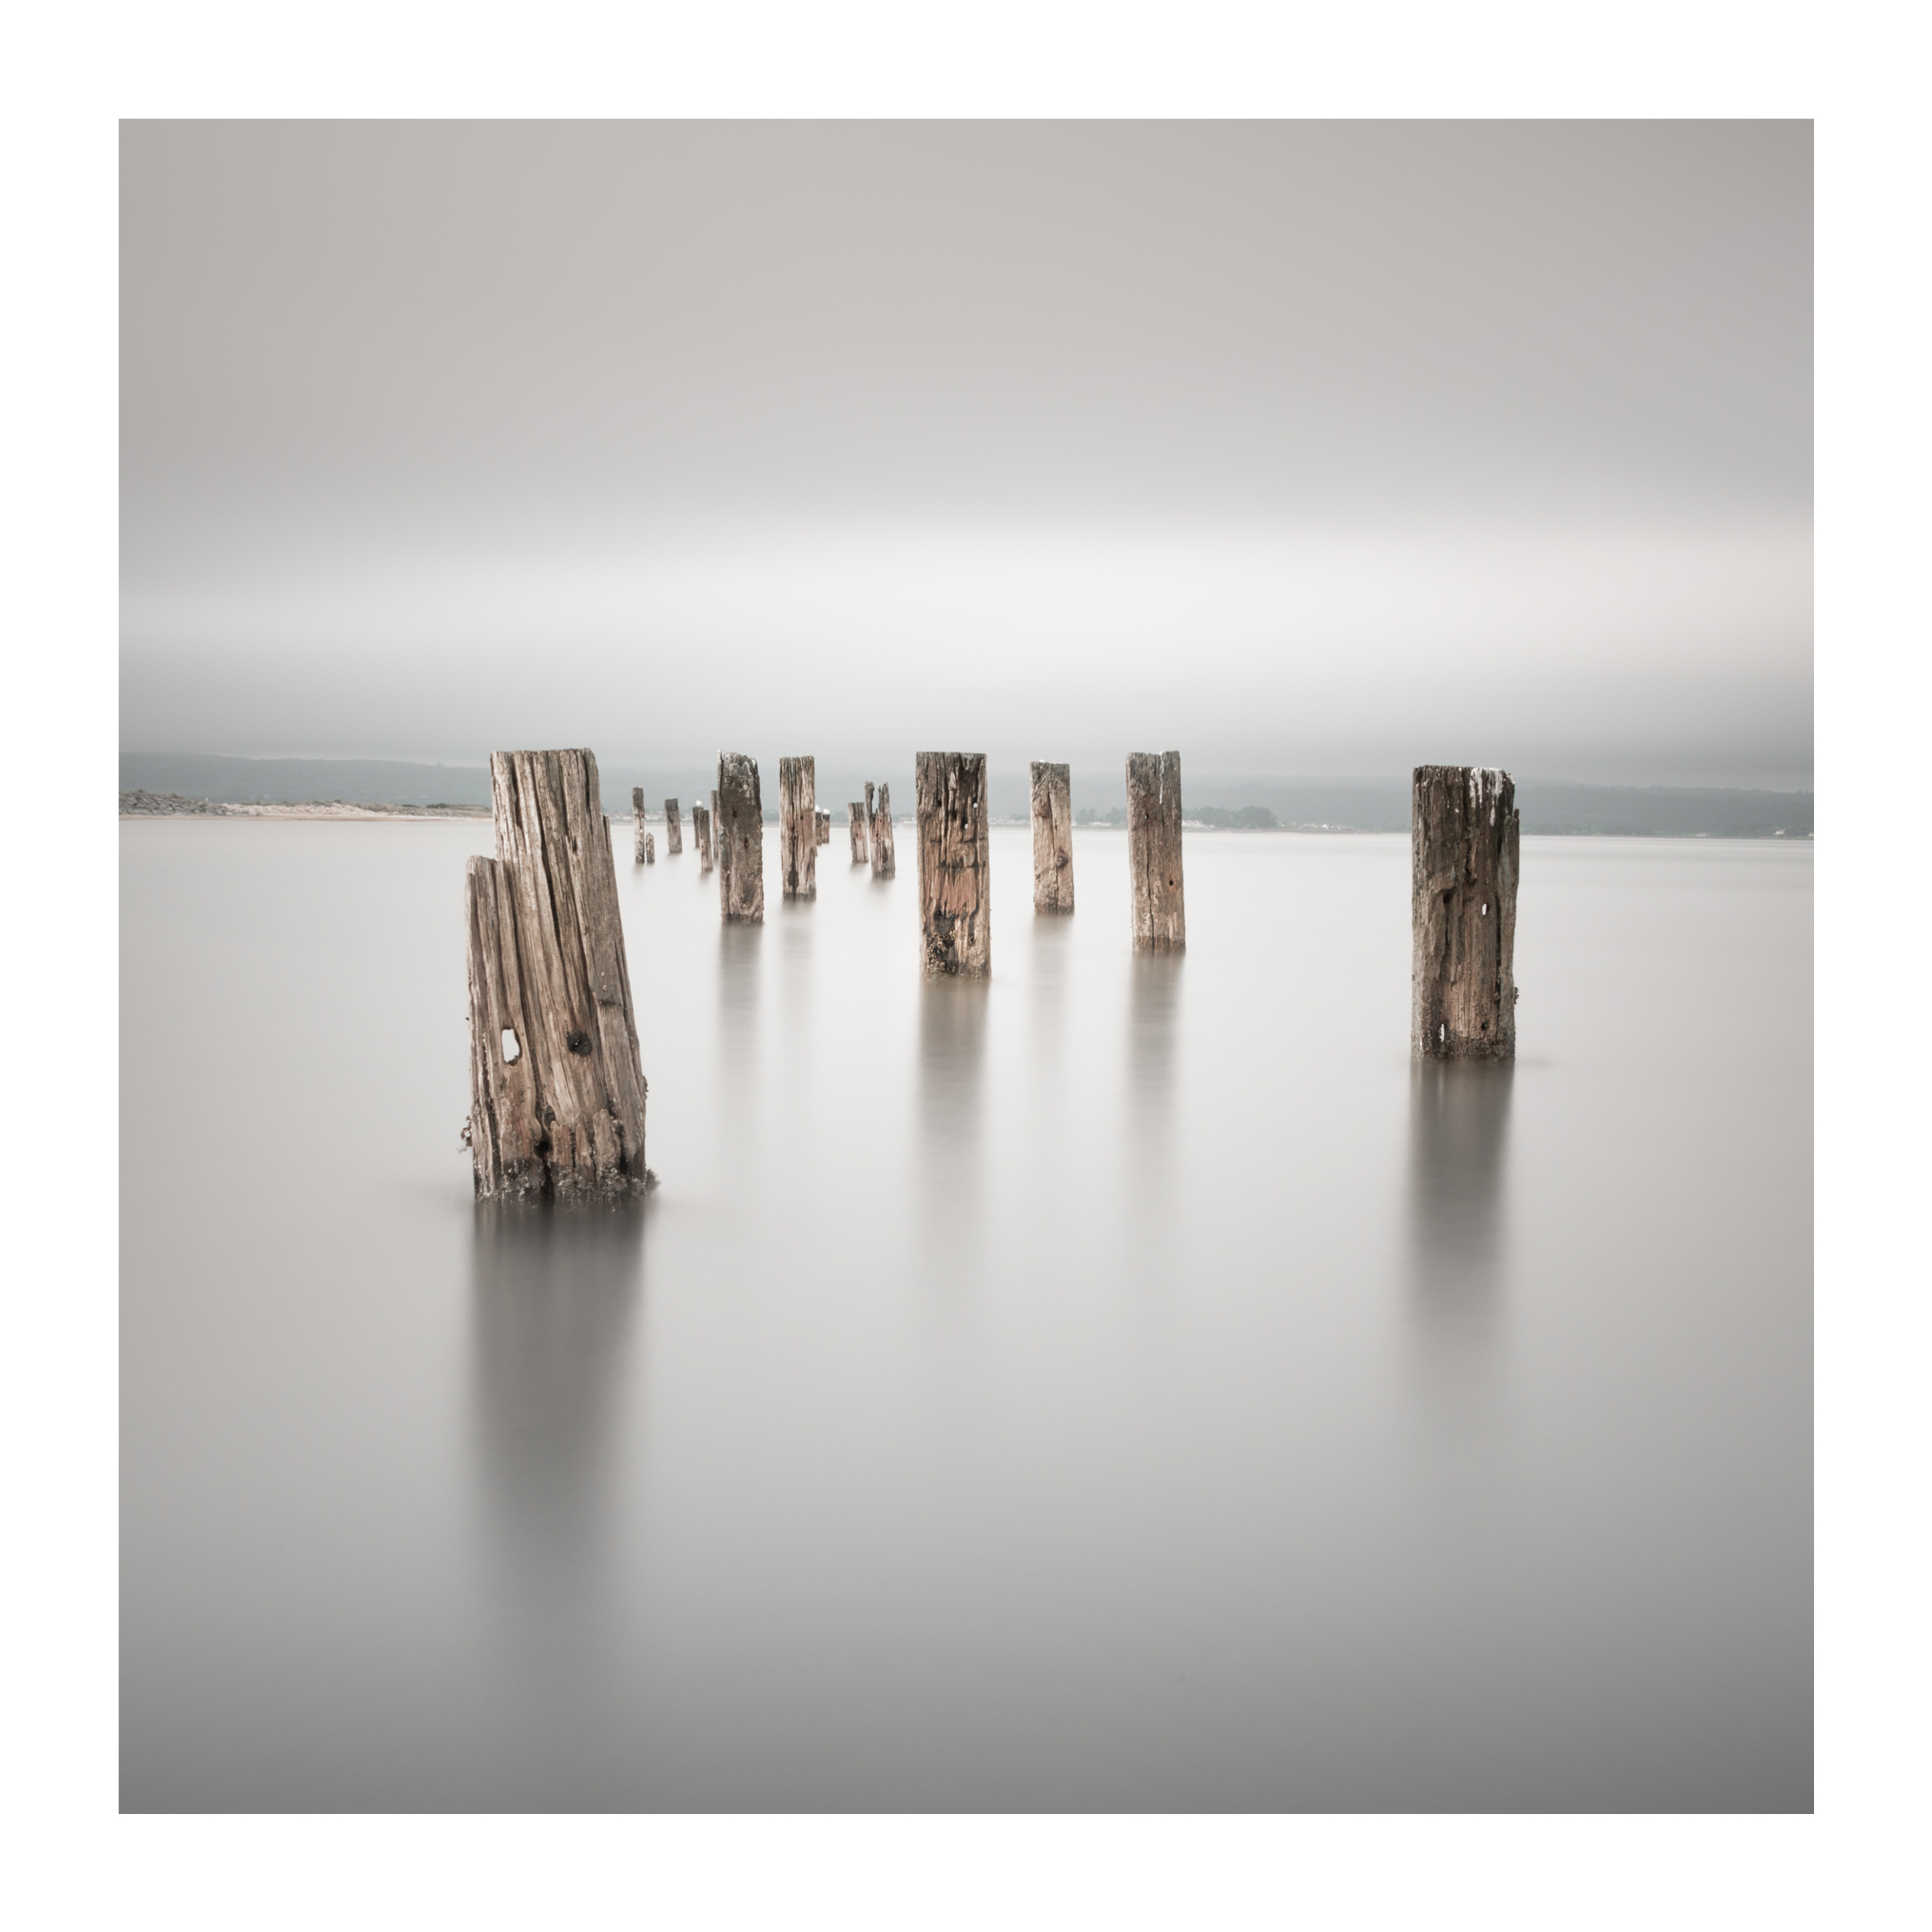 Cunnigar - Image of the Groynes on the Cunnigar in Ring , Co Waterford